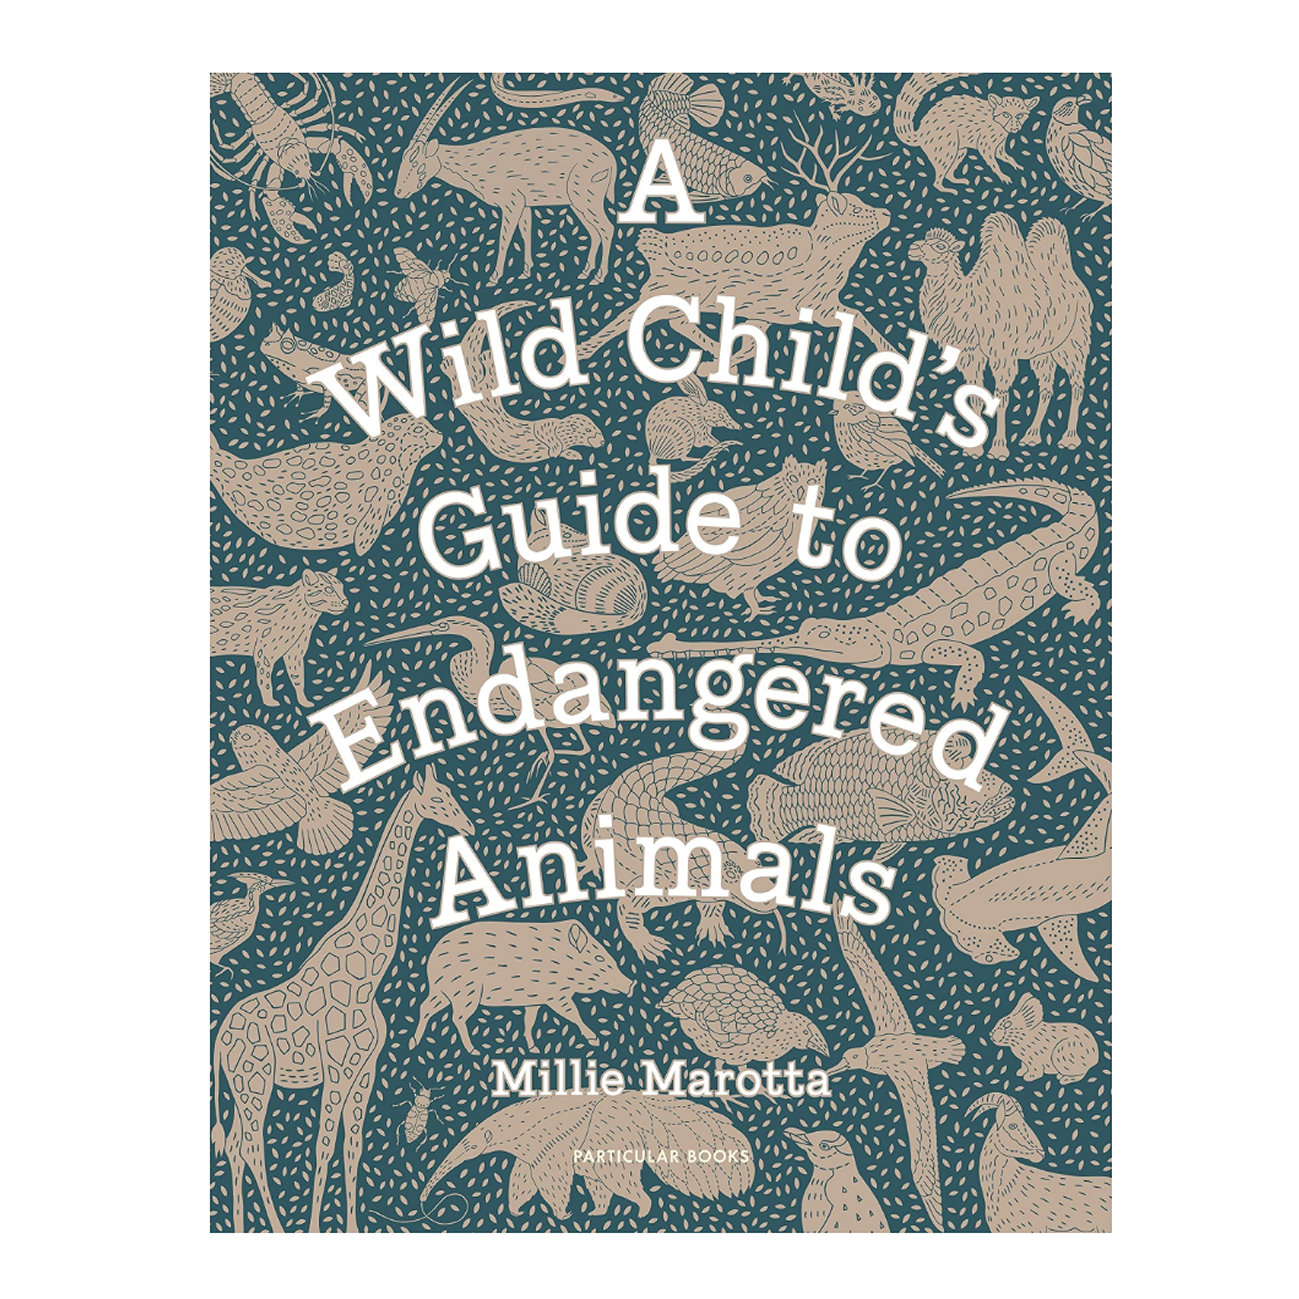 a wild childs guide to endangered animals  - millie marotta